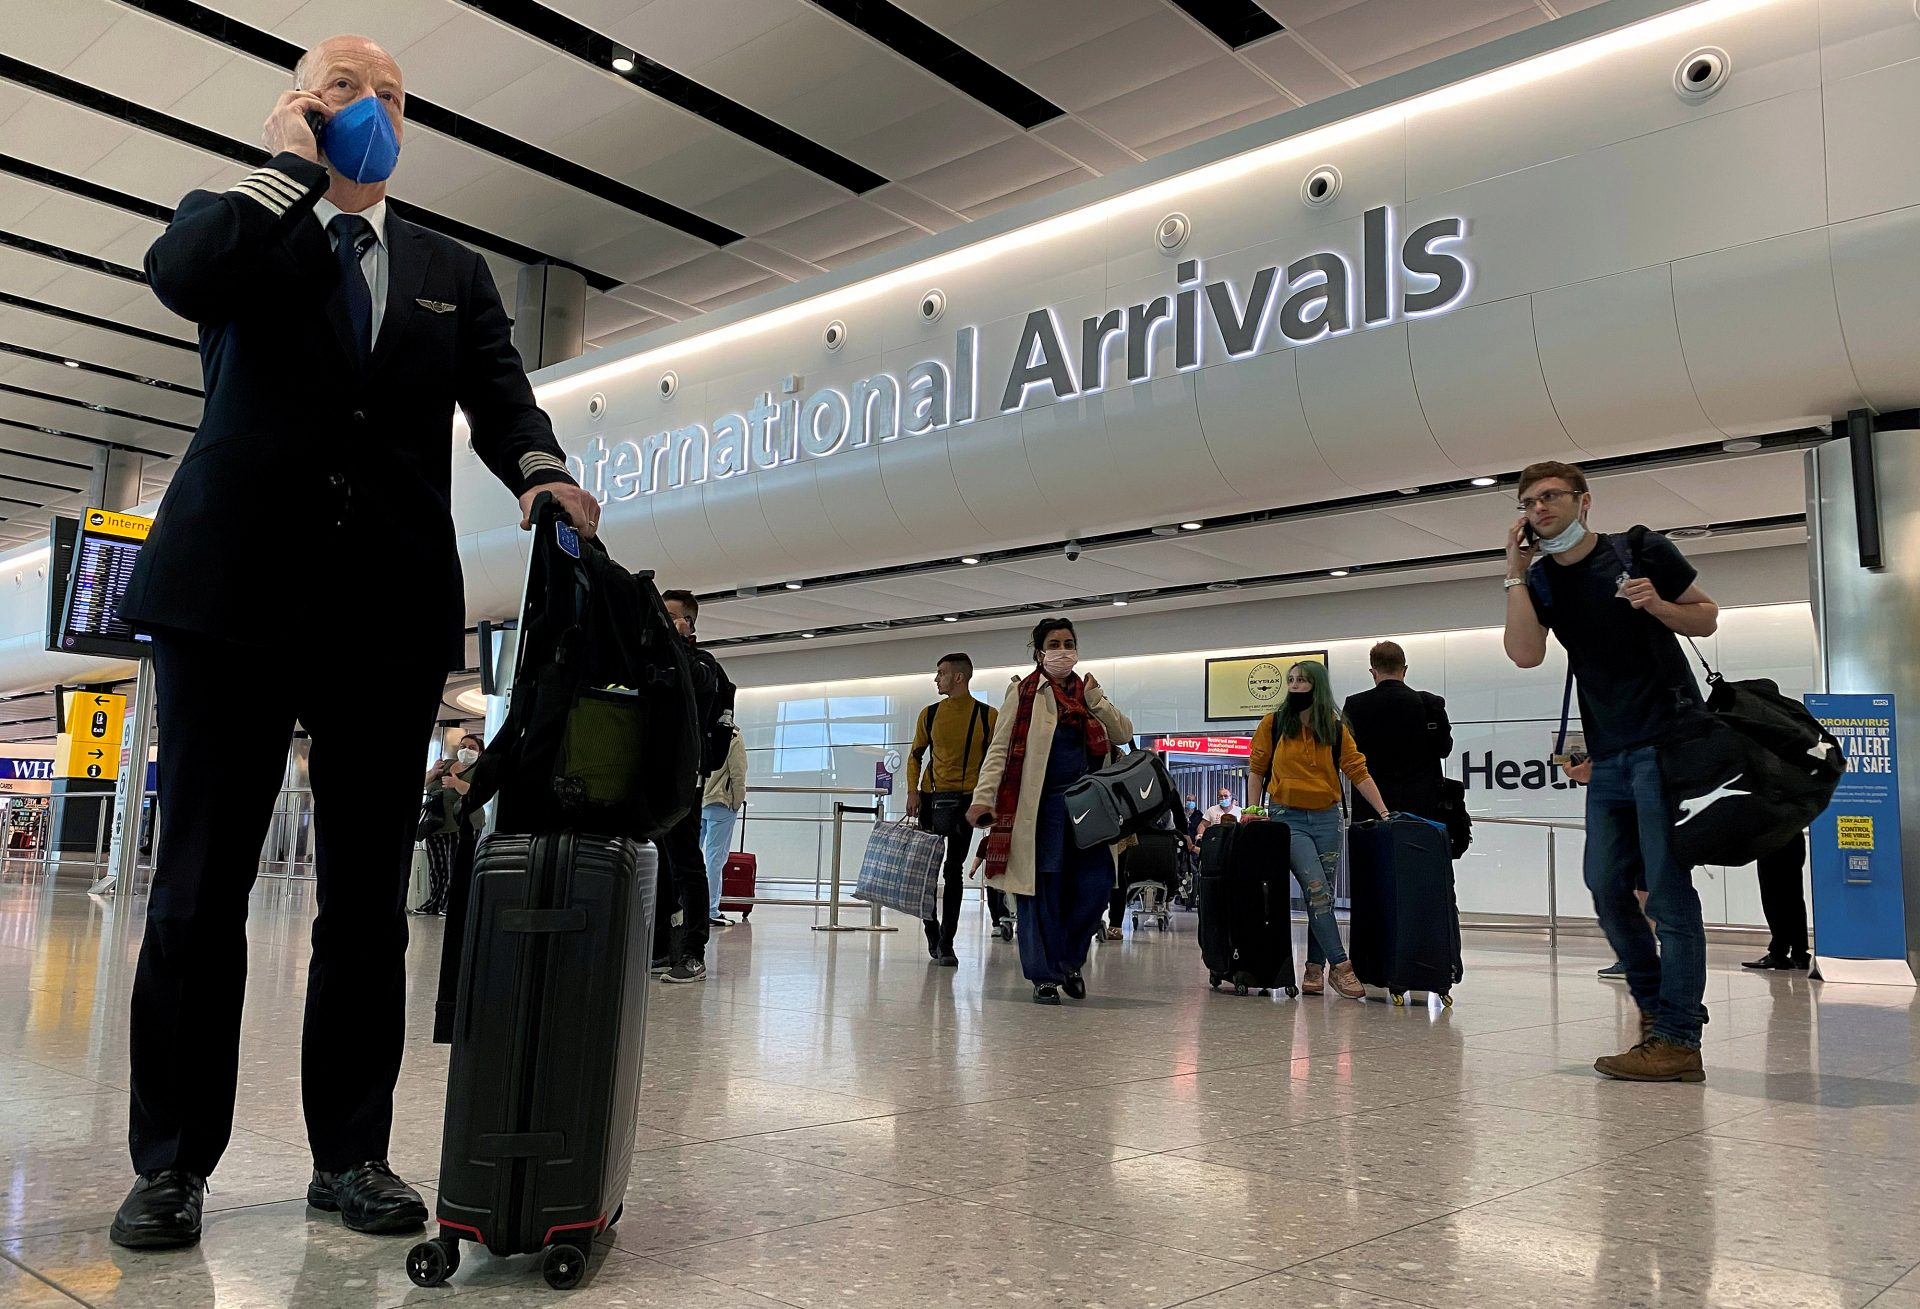 Quarantine-free air bridges for 59 countries FINALLY revealed giving Brits green light to jet off on holiday tomorrow 11